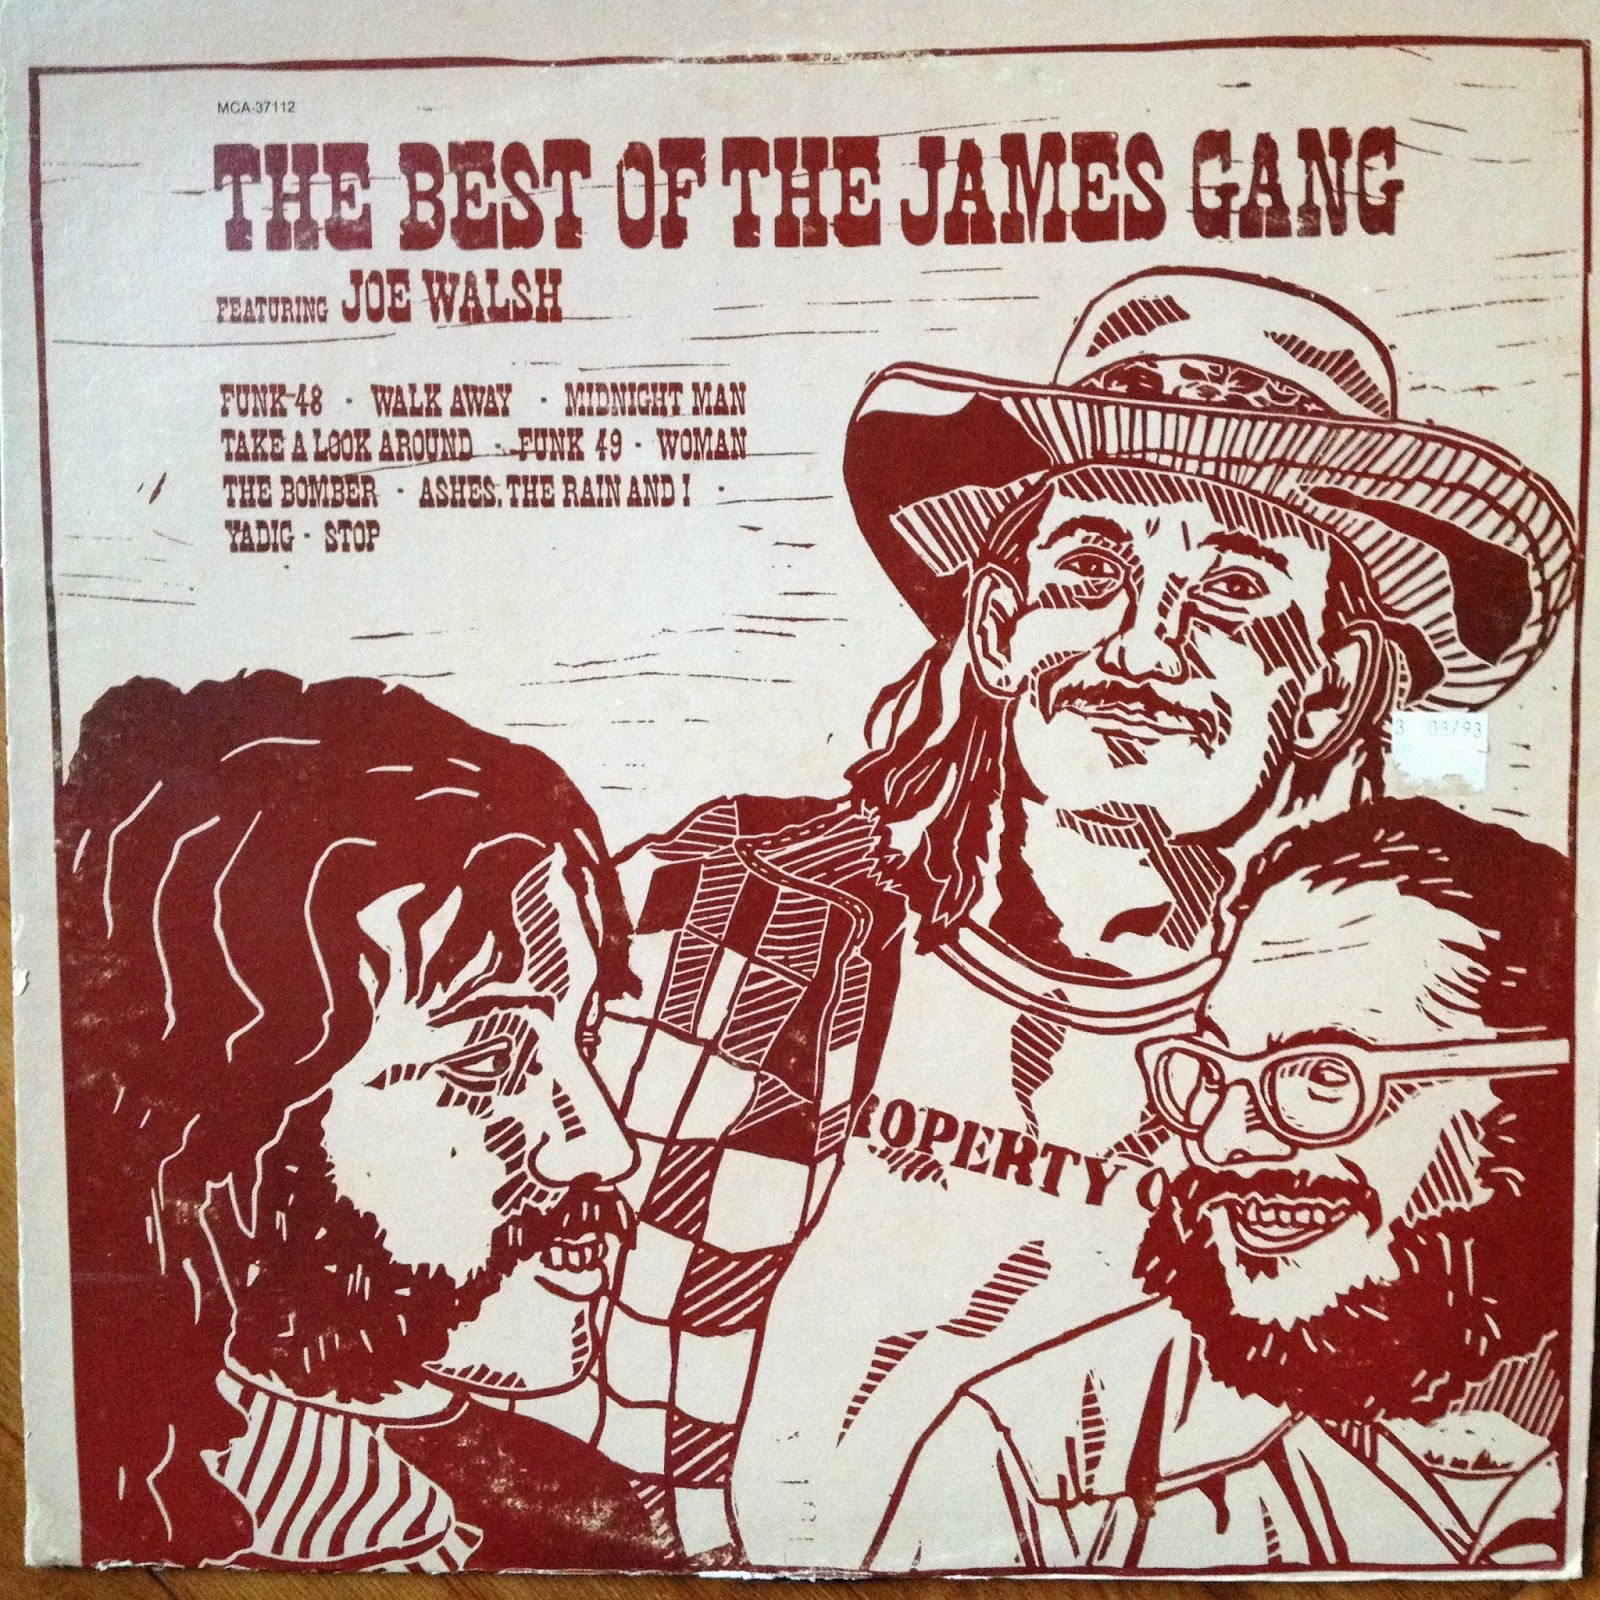 LP cover:  The Best of the James Gang